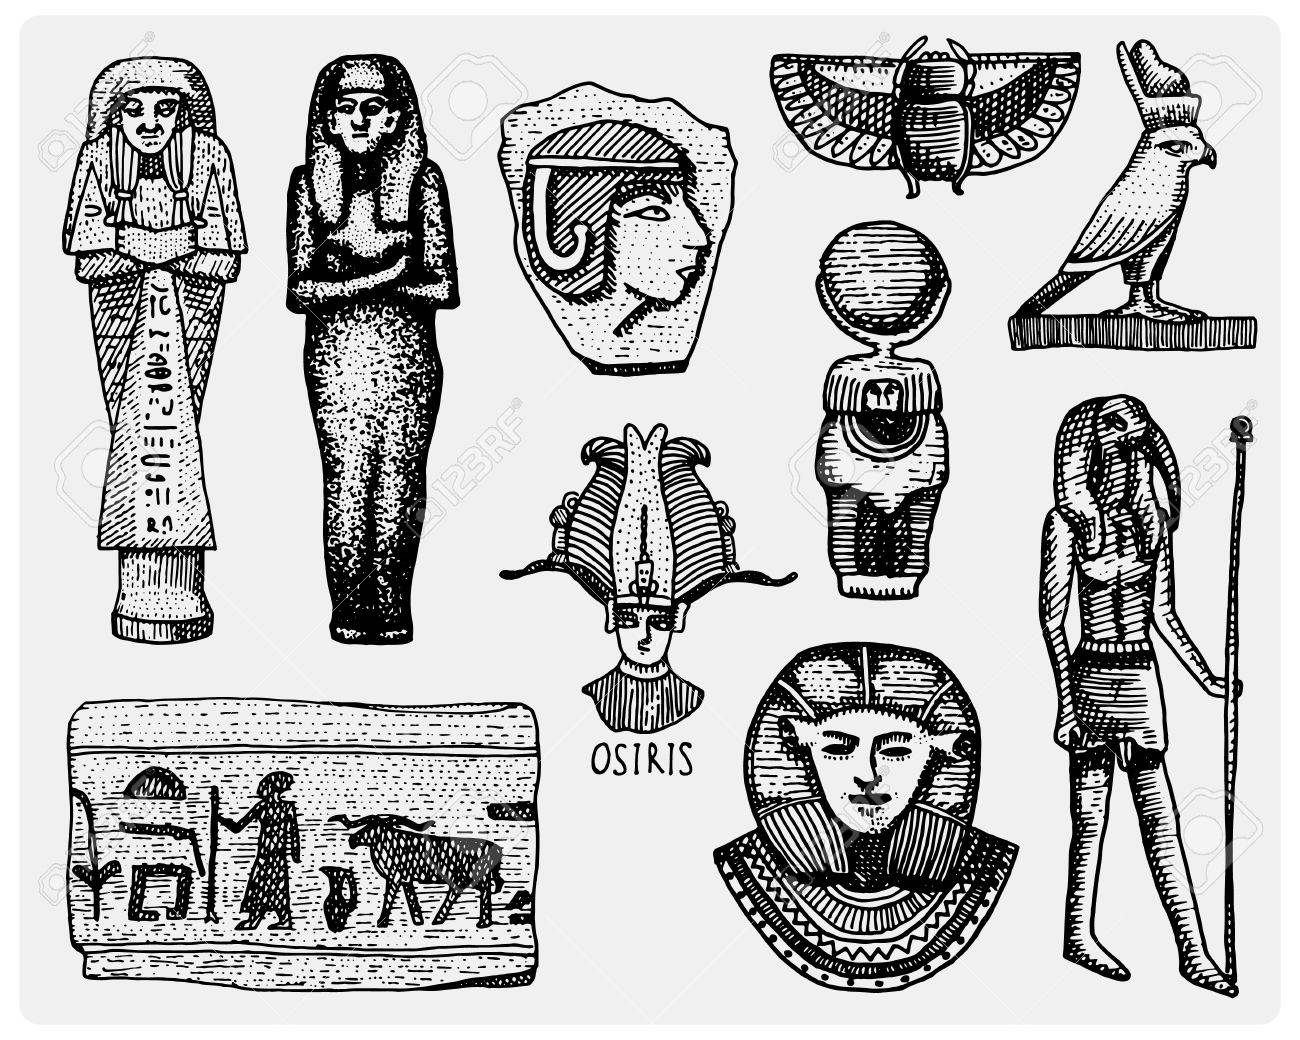 Egyptian Symbols Pharaon Scorob Hieroglyphics And Osiris Head